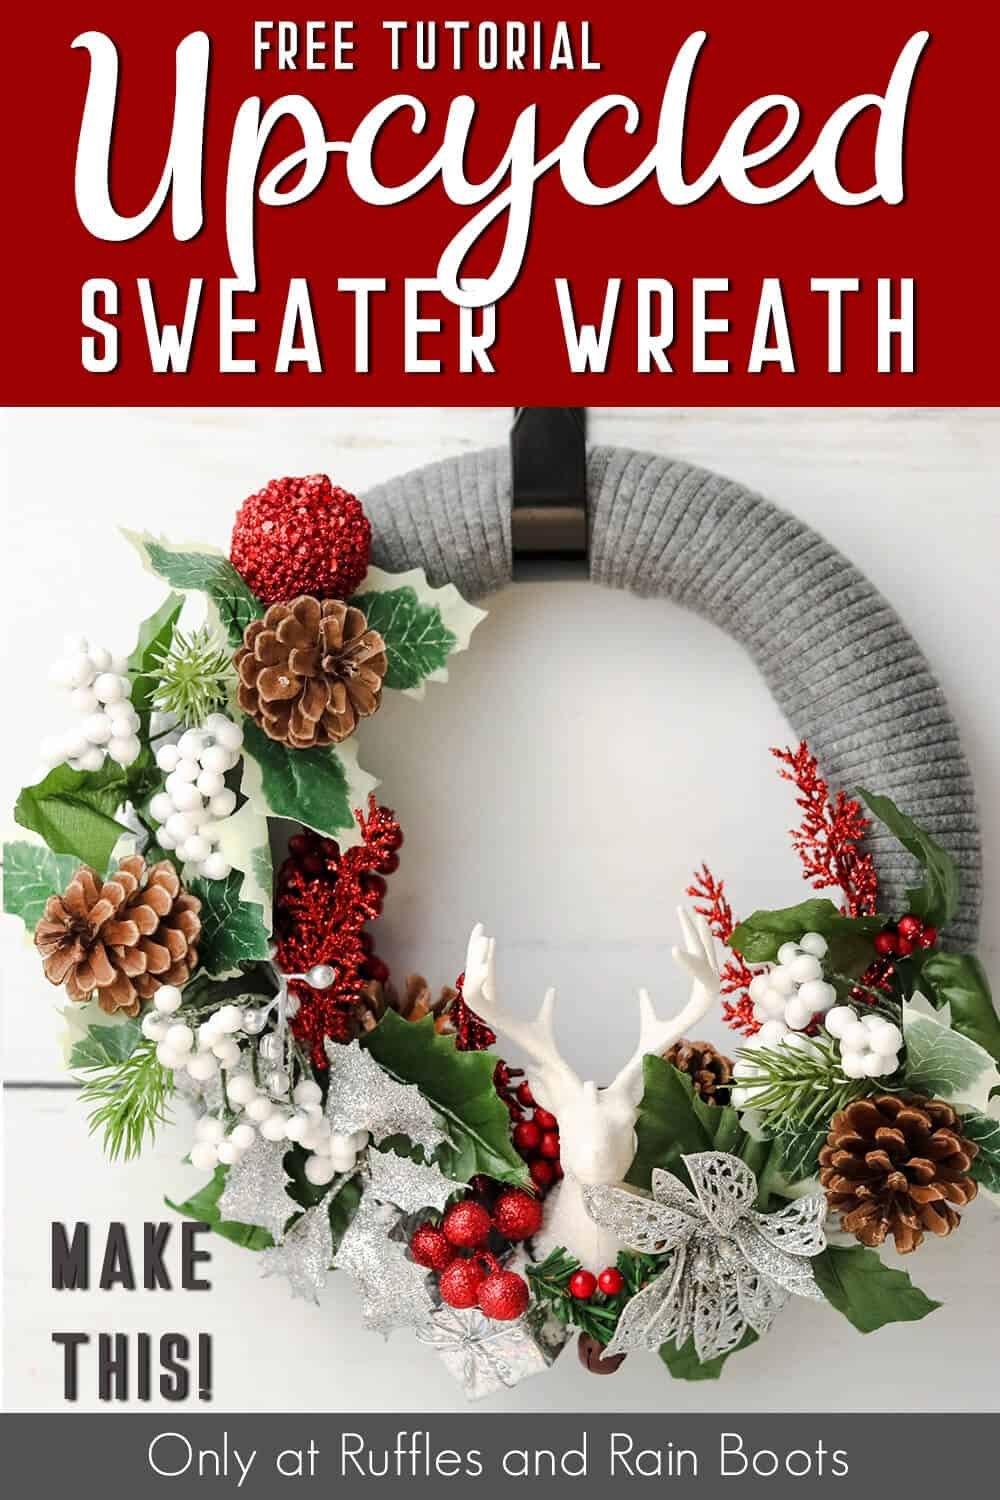 front view of easy upcycled sweater wreath with text which reads free tutorial upcycled sweater wreath make this